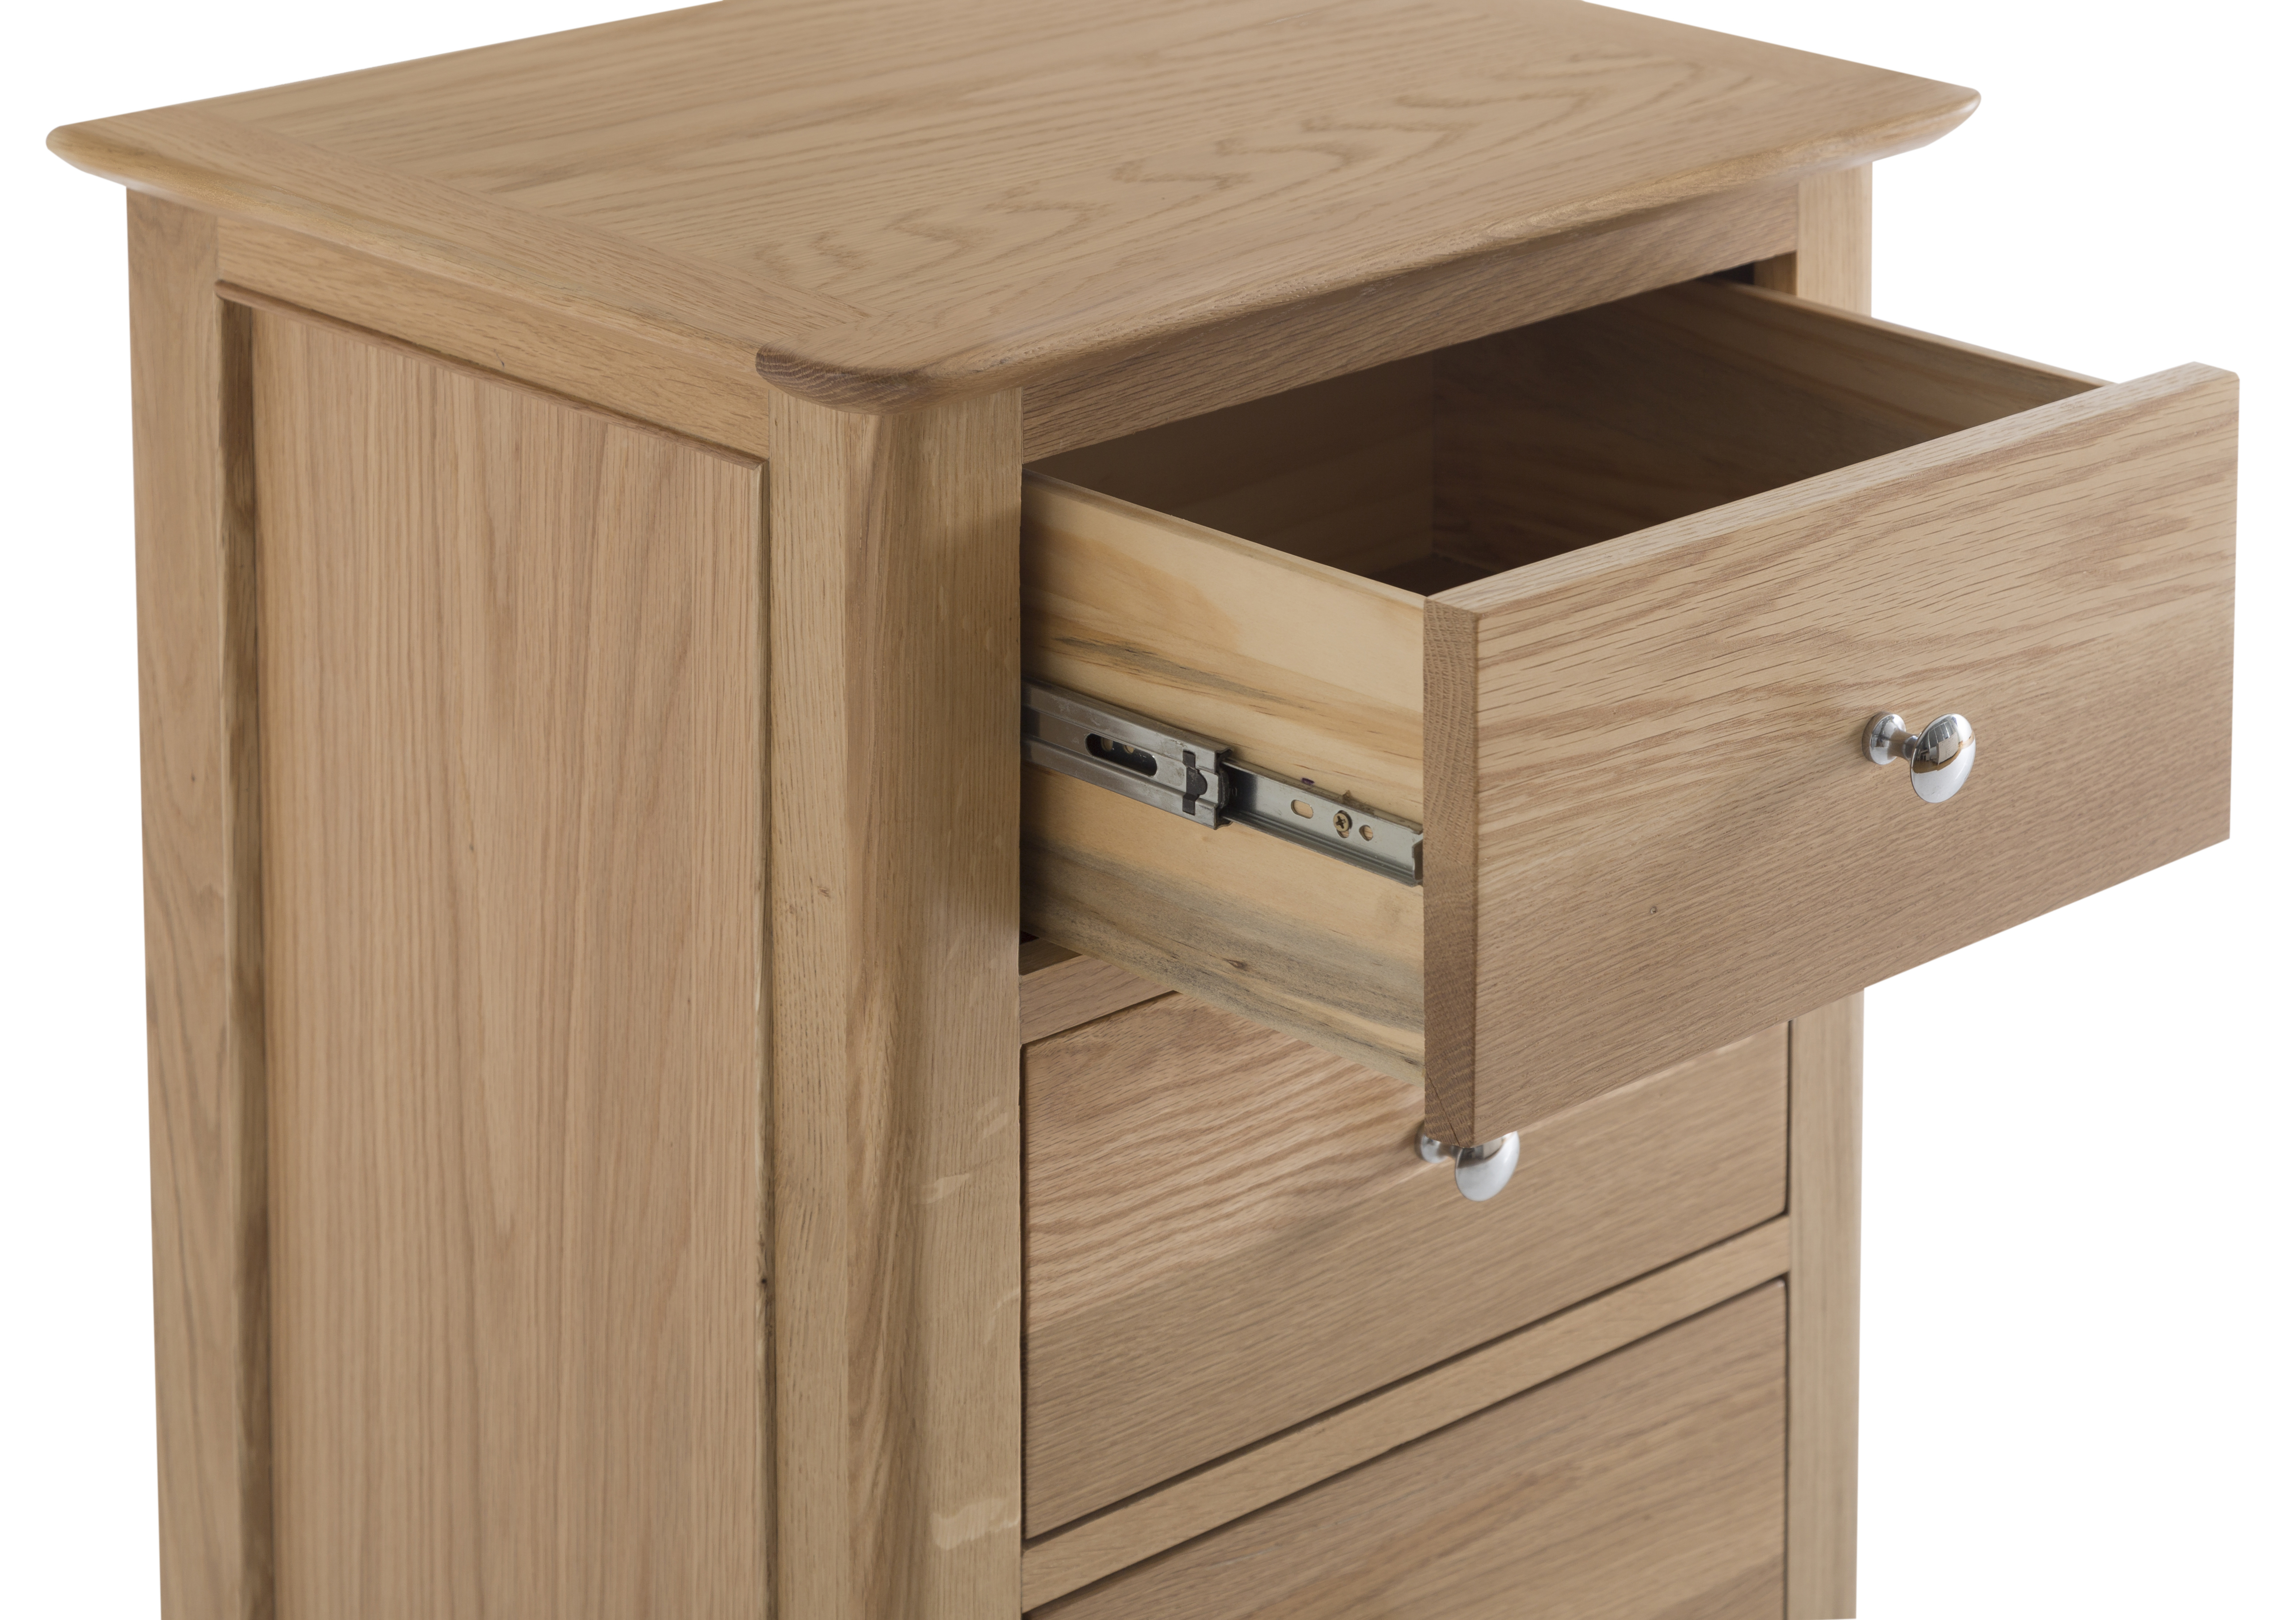 Clara 4 Drawer Narrow Chest of Drawers